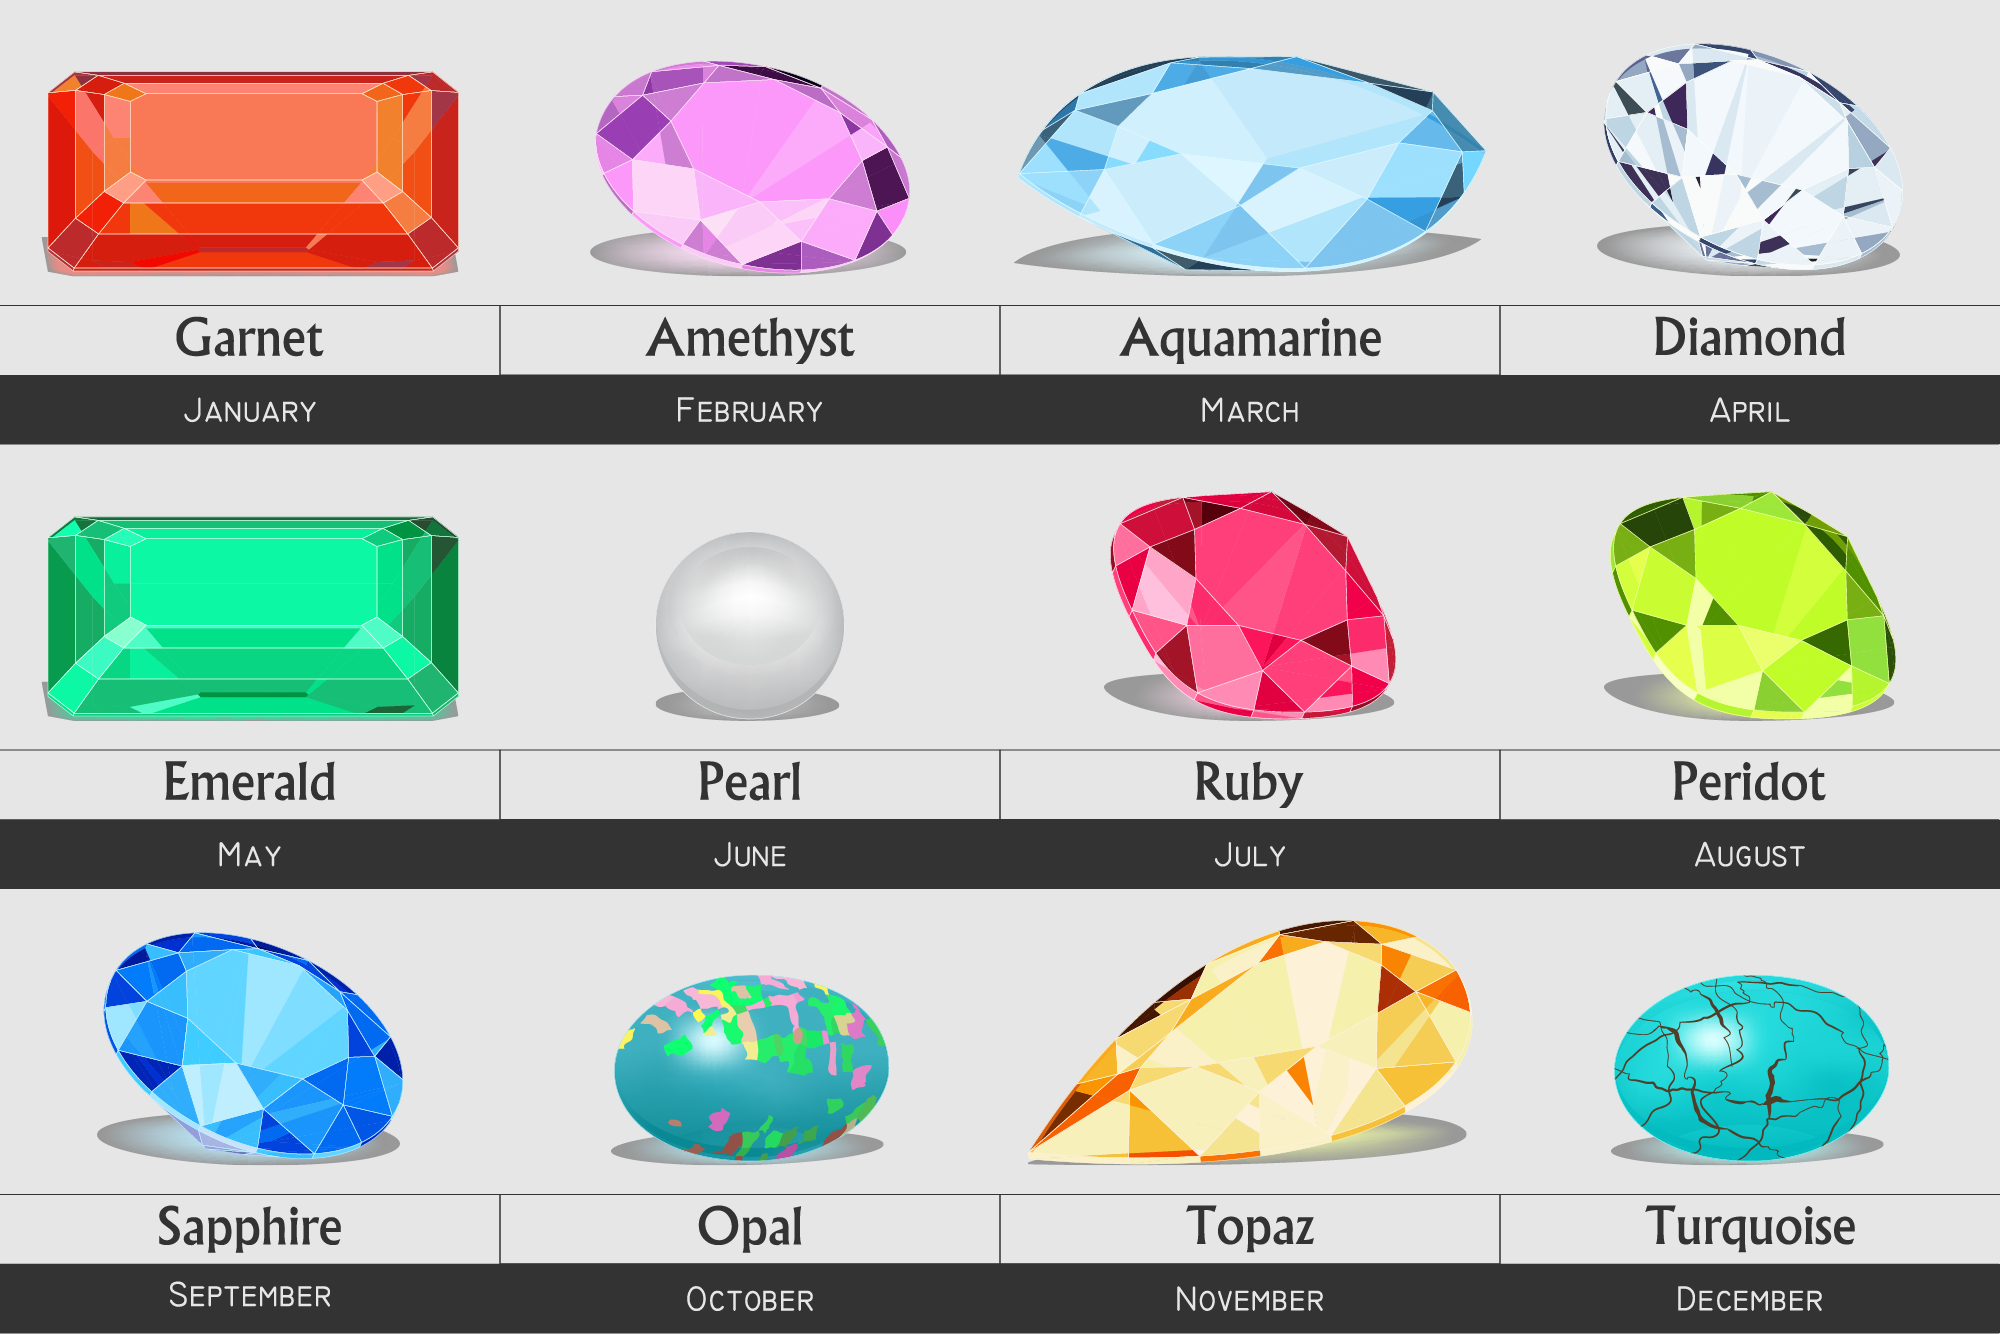 Birthstone Colors by Month and Their